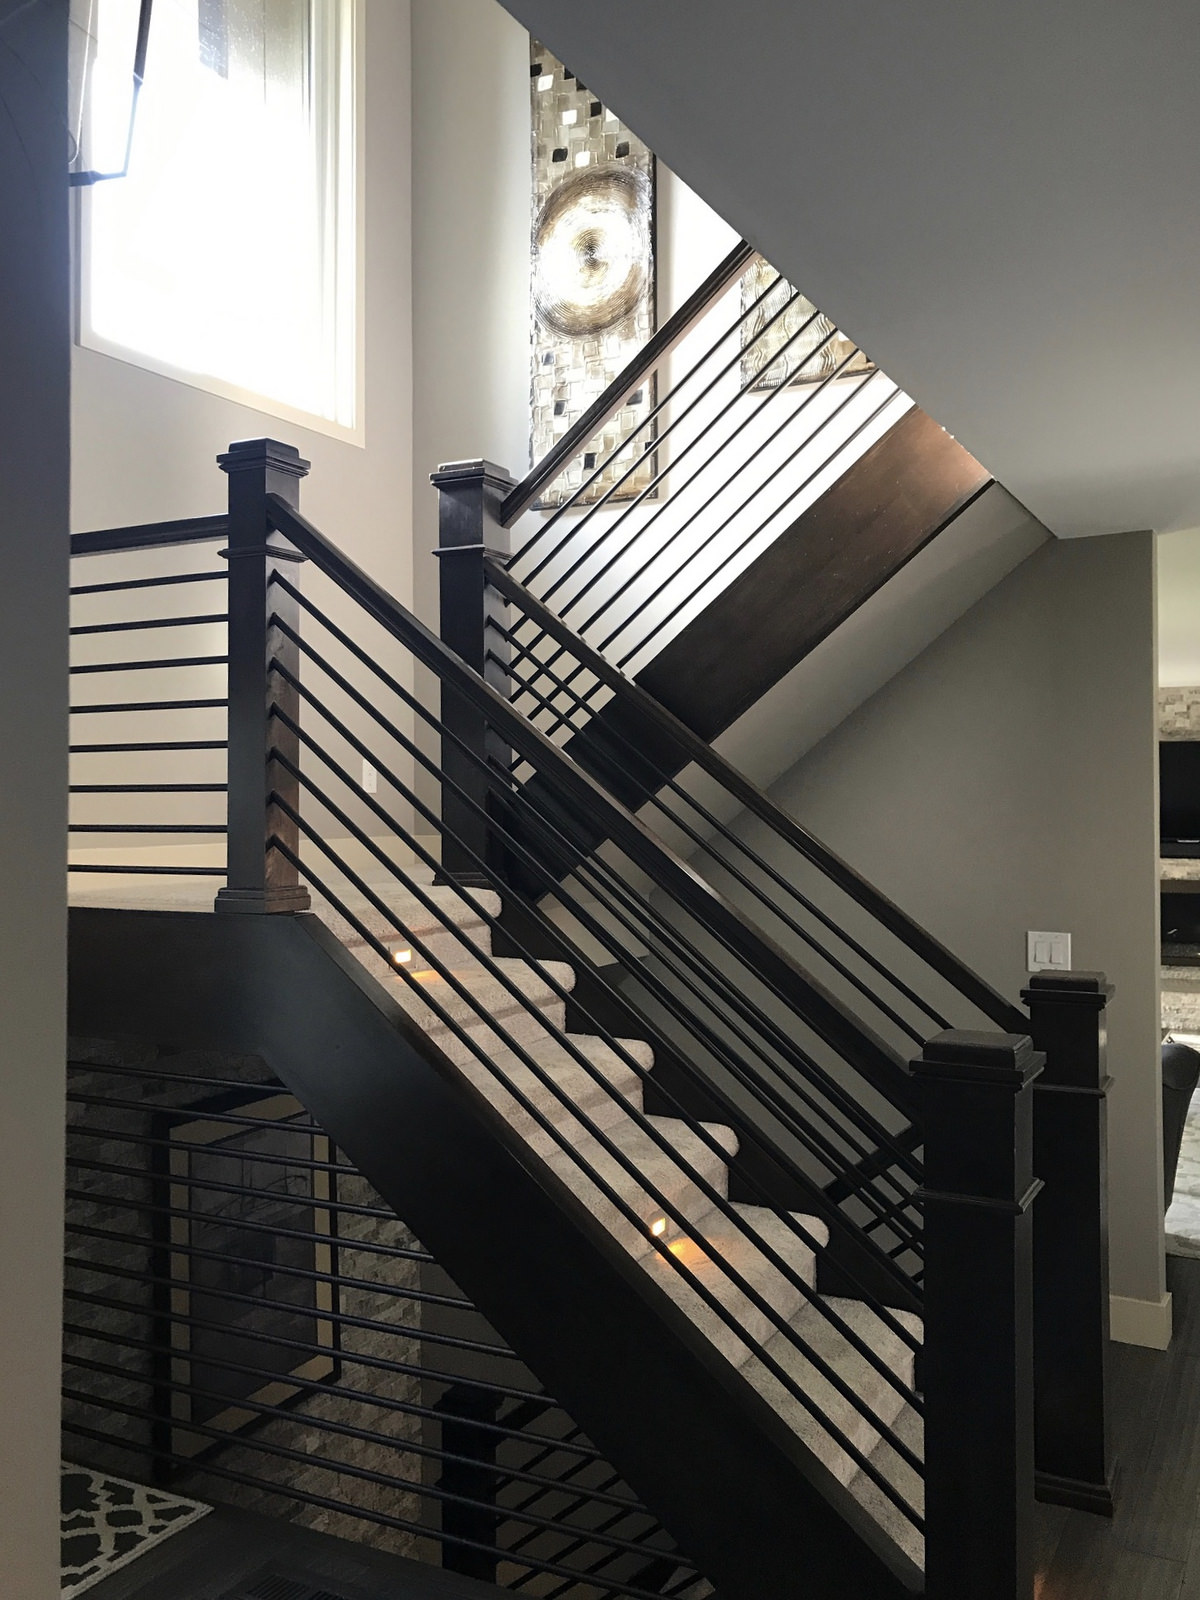 Handrail-Whole House Remodel